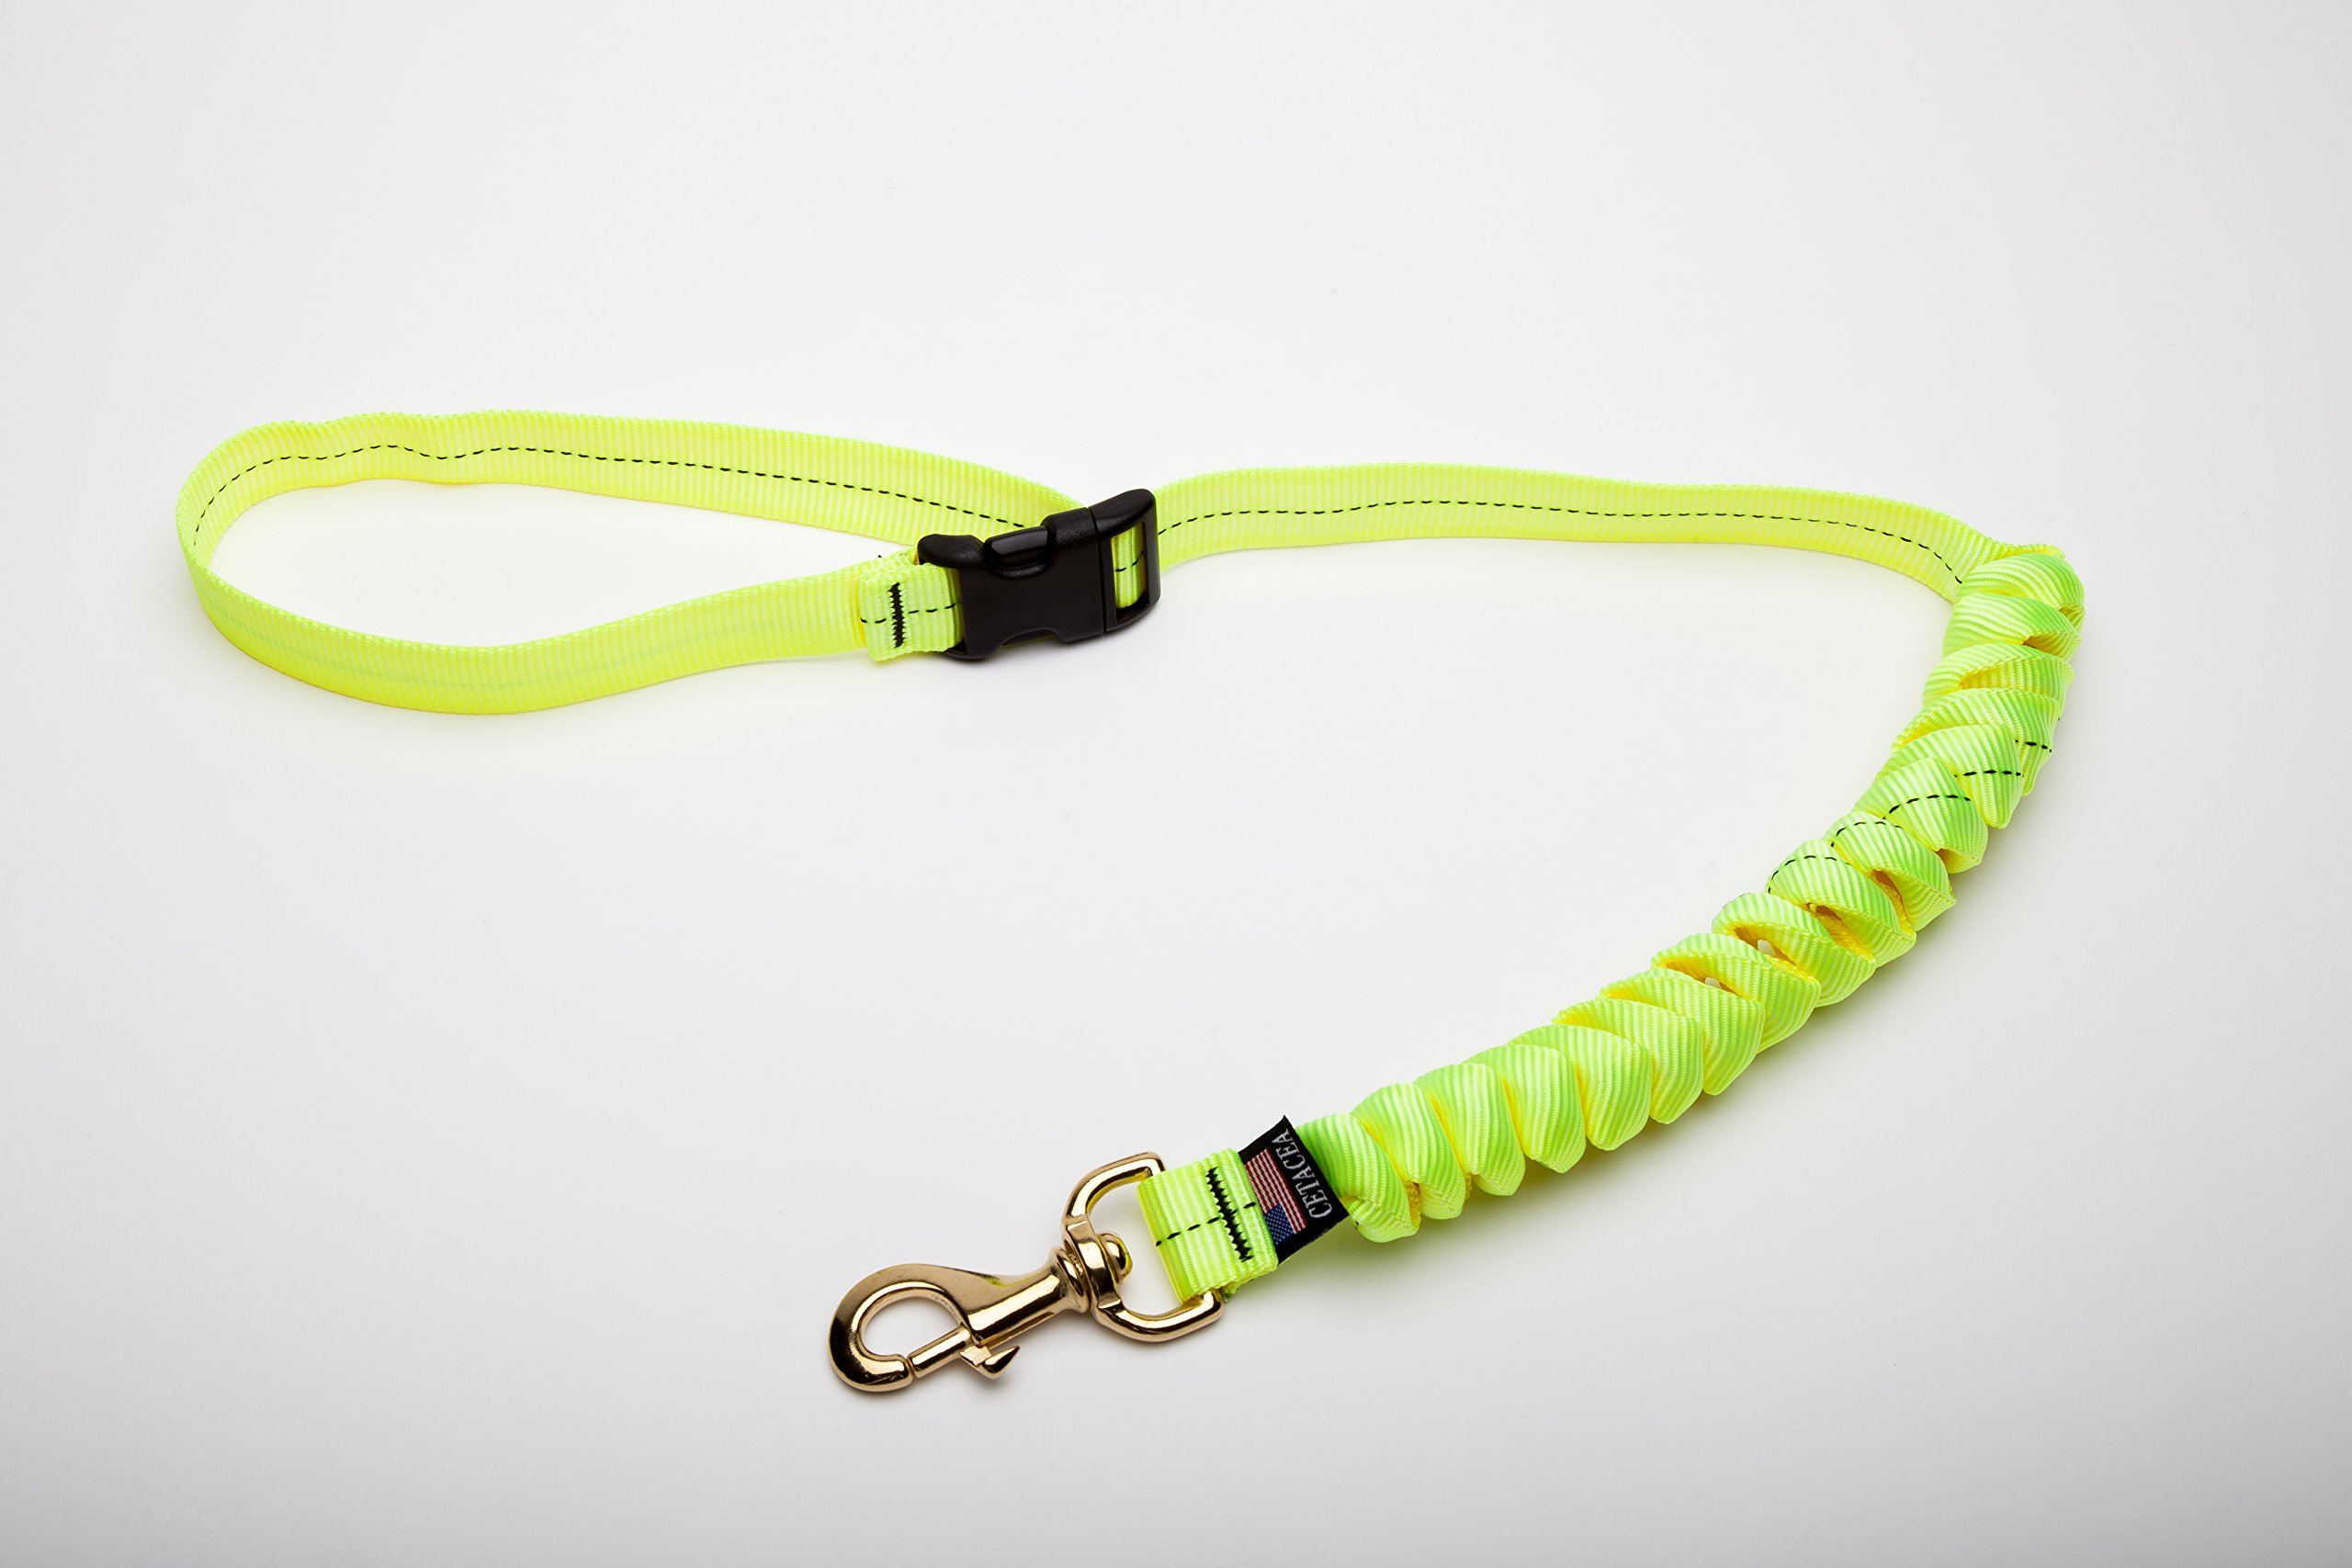 Drag-Free Pet/Dog Leash w/Quick Release Handle - 1'' Wide - Lime by Cetacea